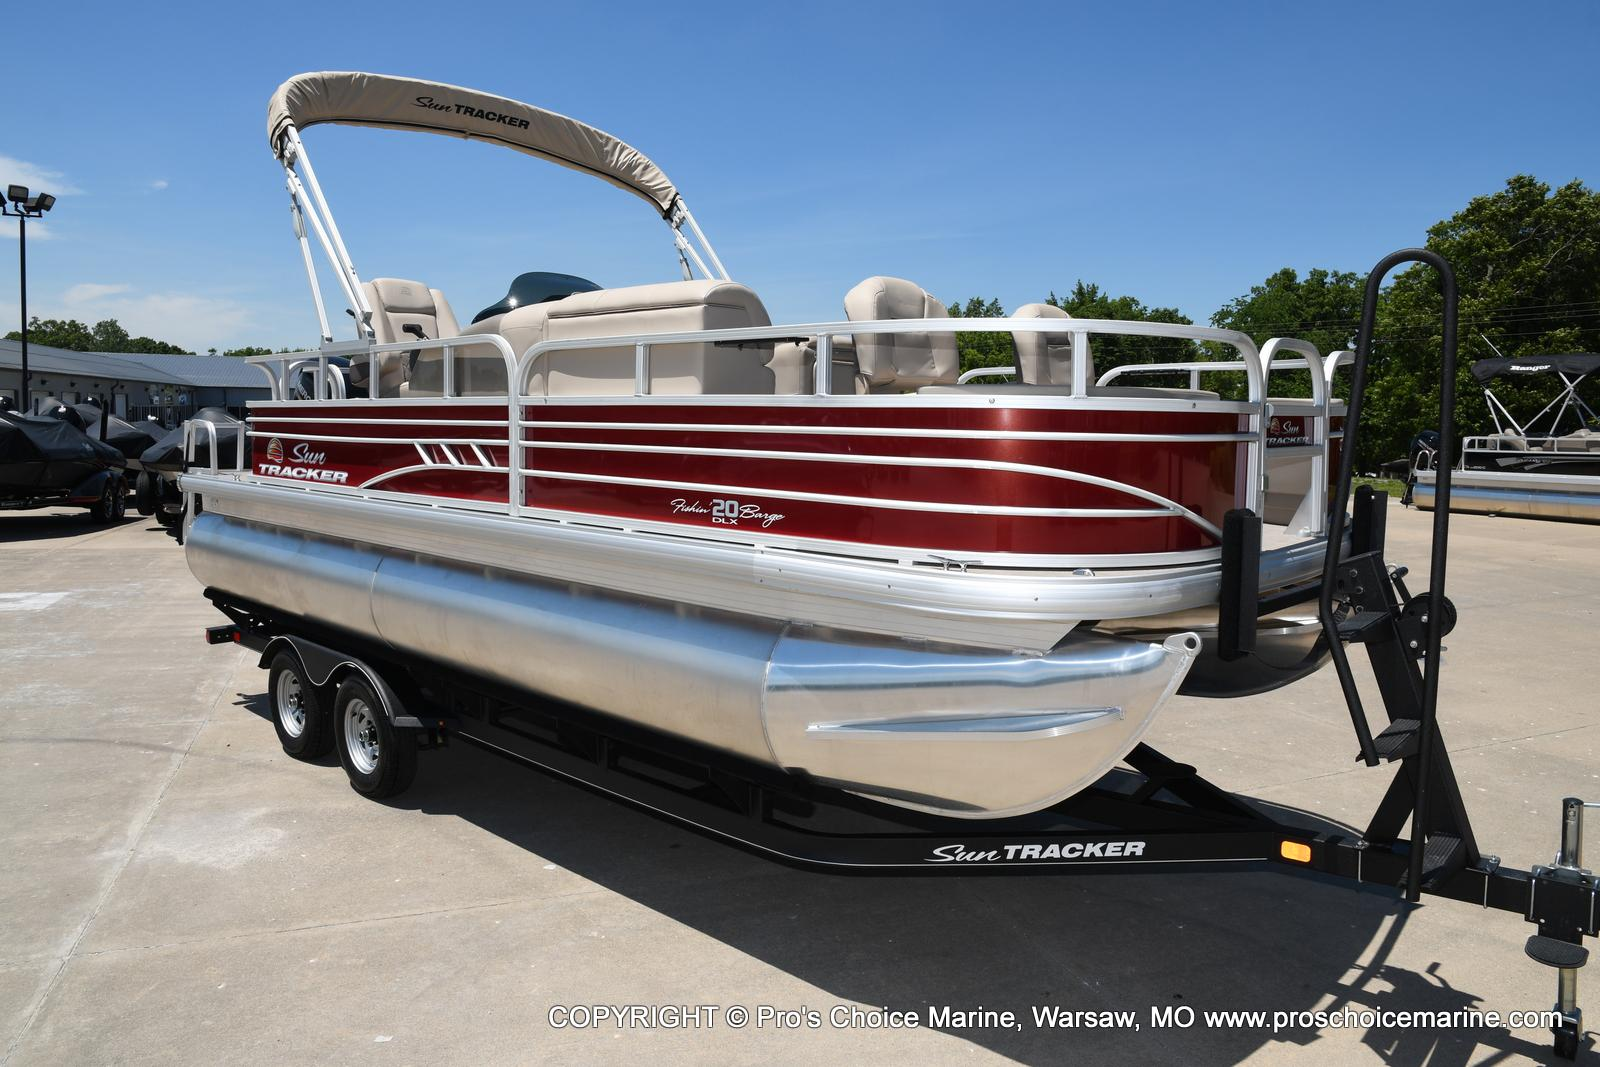 2021 Sun Tracker boat for sale, model of the boat is Fishin' Barge 20 DLX & Image # 22 of 50